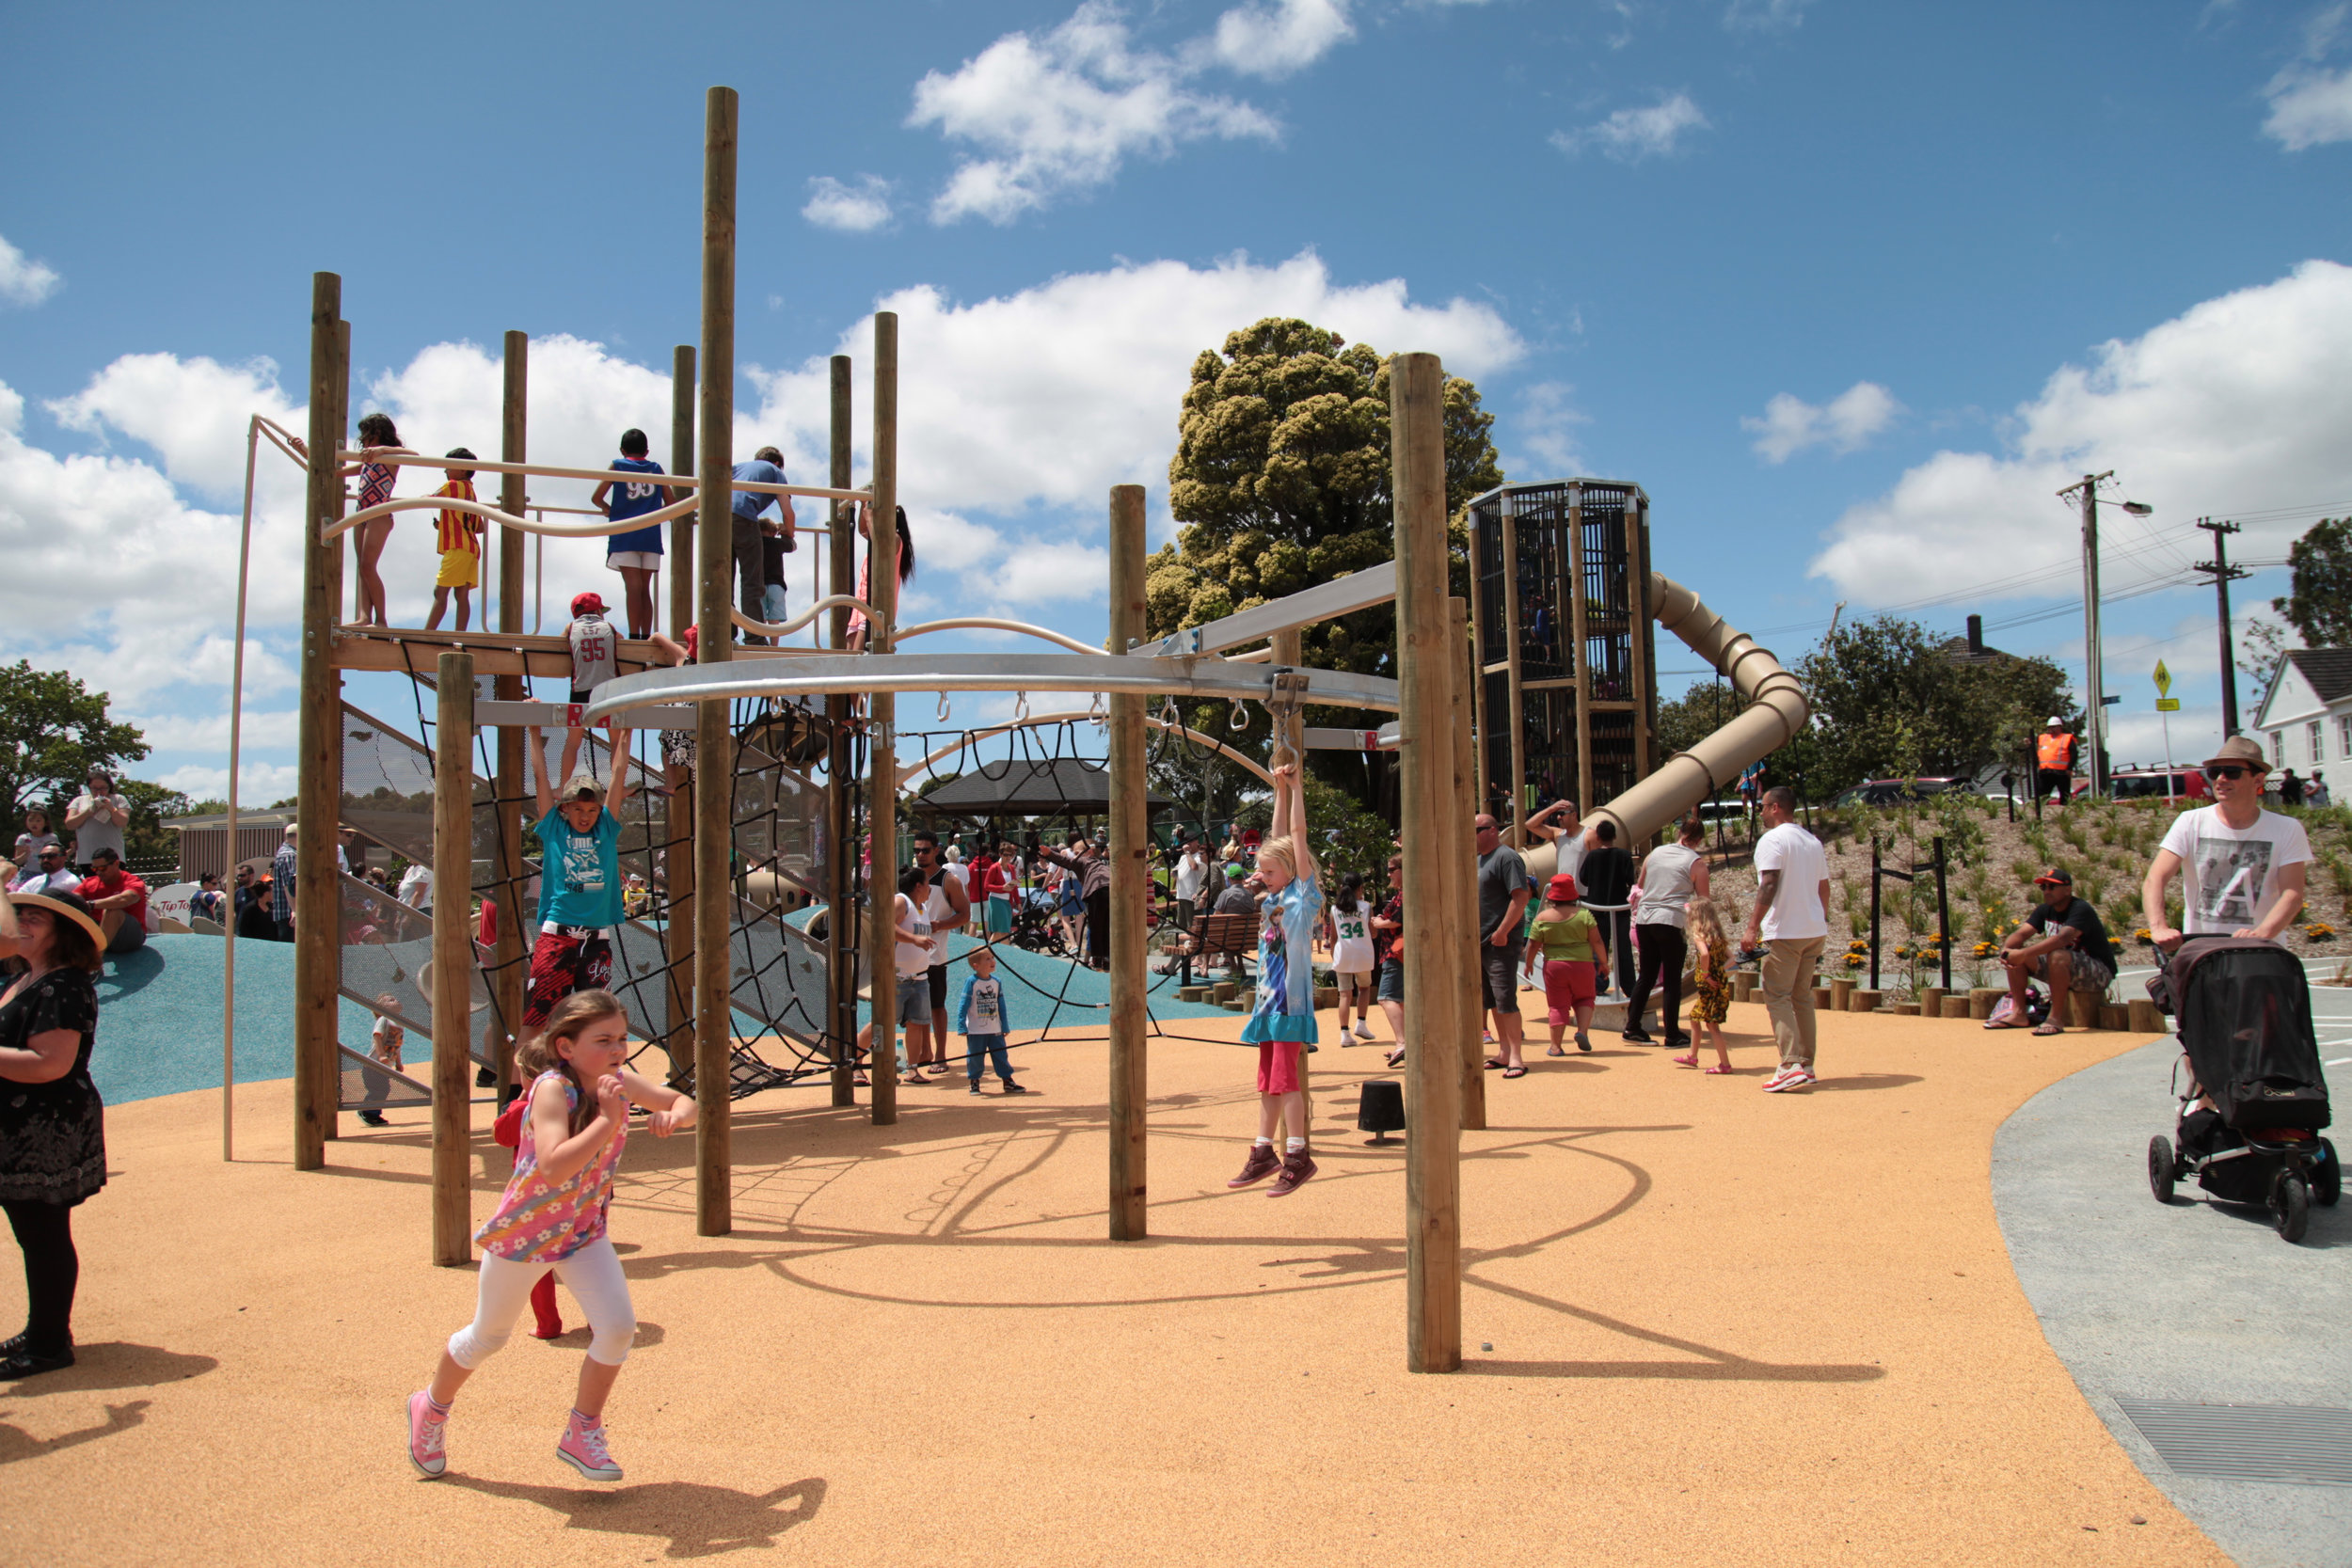 Another view of Waterview park featuring equipment from Playground centre.